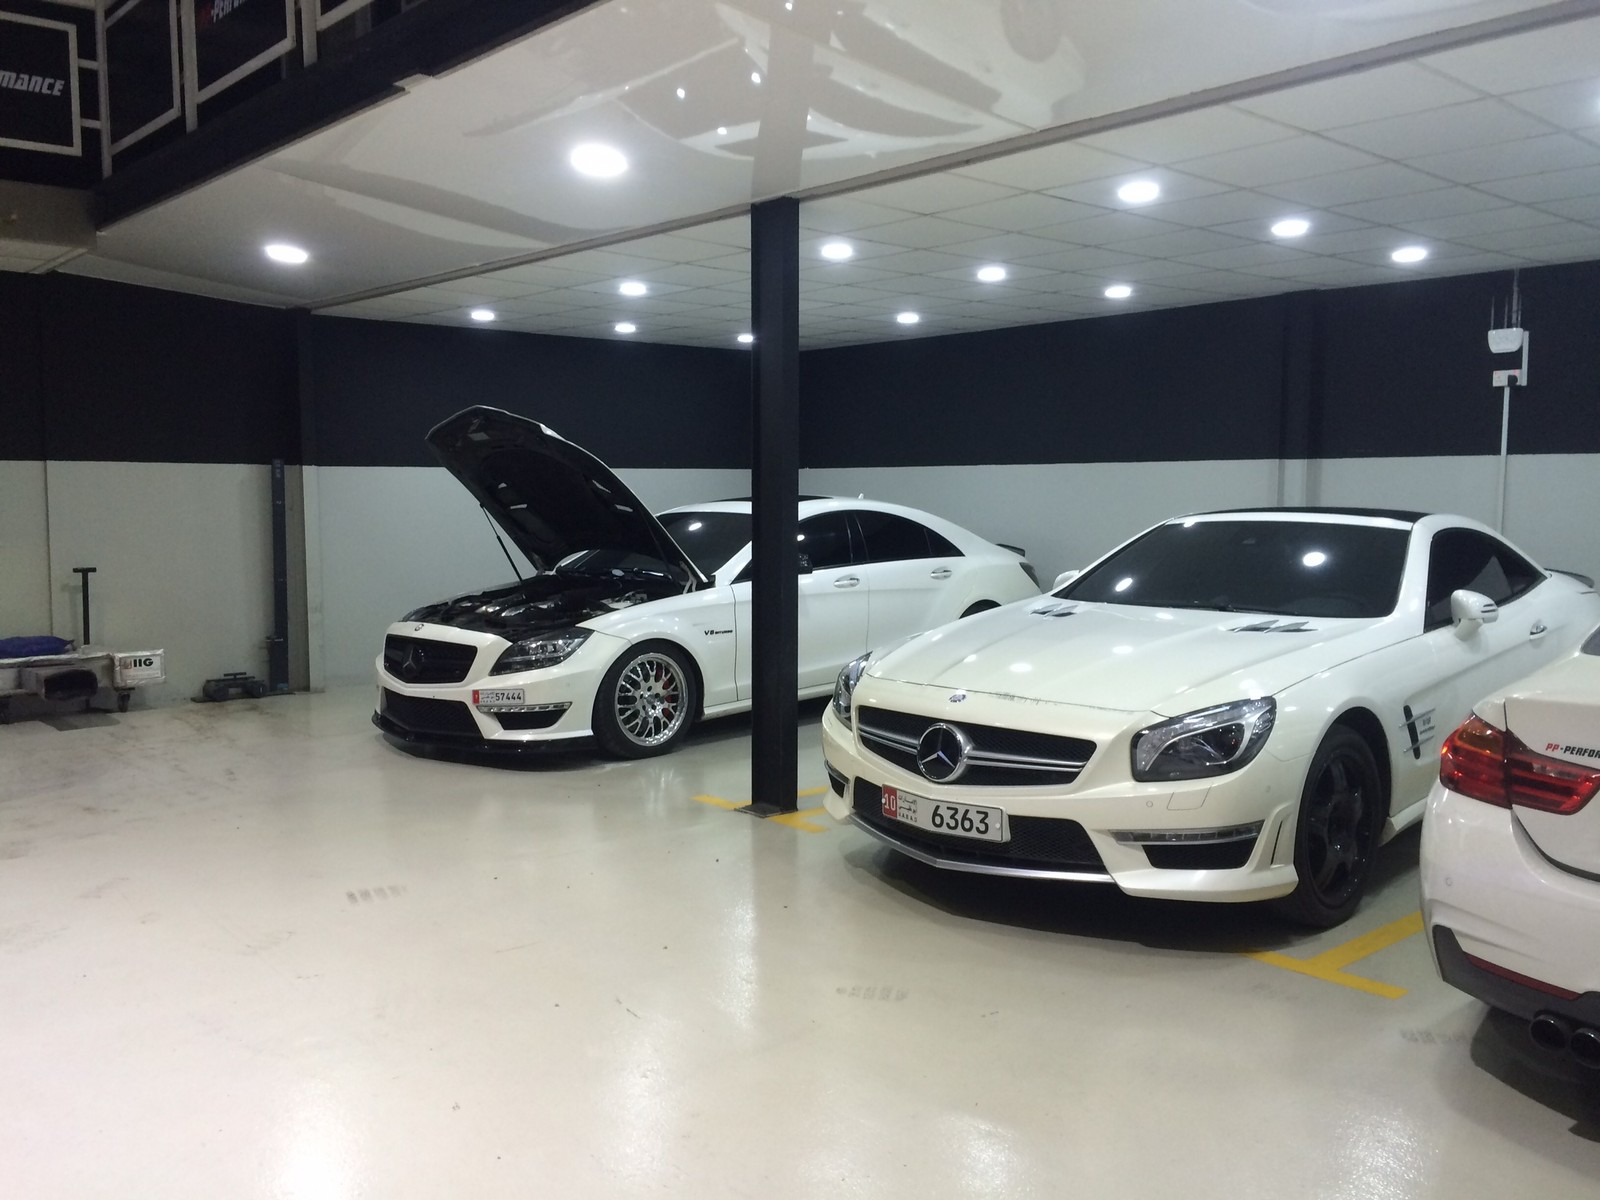 White 2013 Mercedes-Benz SL63 AMG